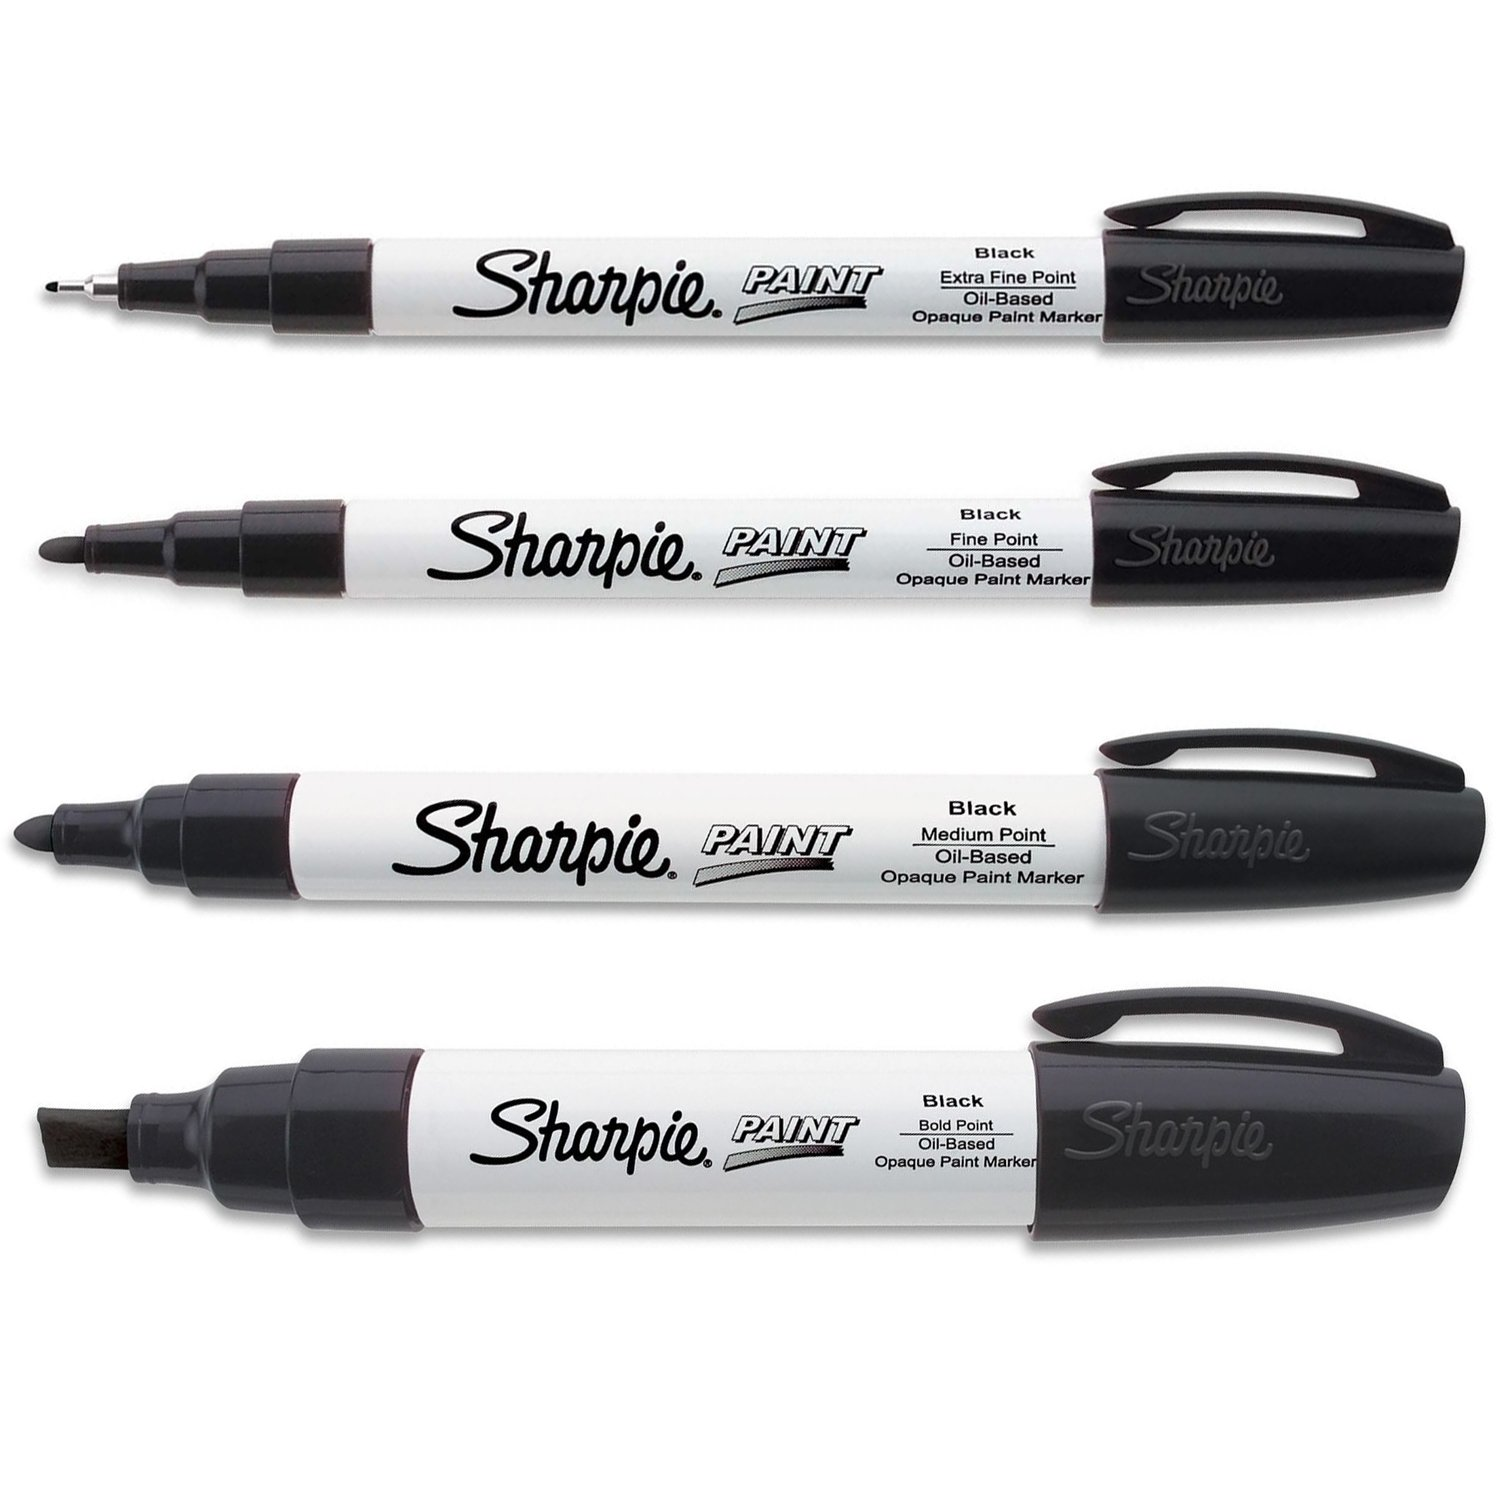 Sharpie Paint Marker Oil Based Black All Sizes Kit with Ex Fine, Fine, Medium & Bold